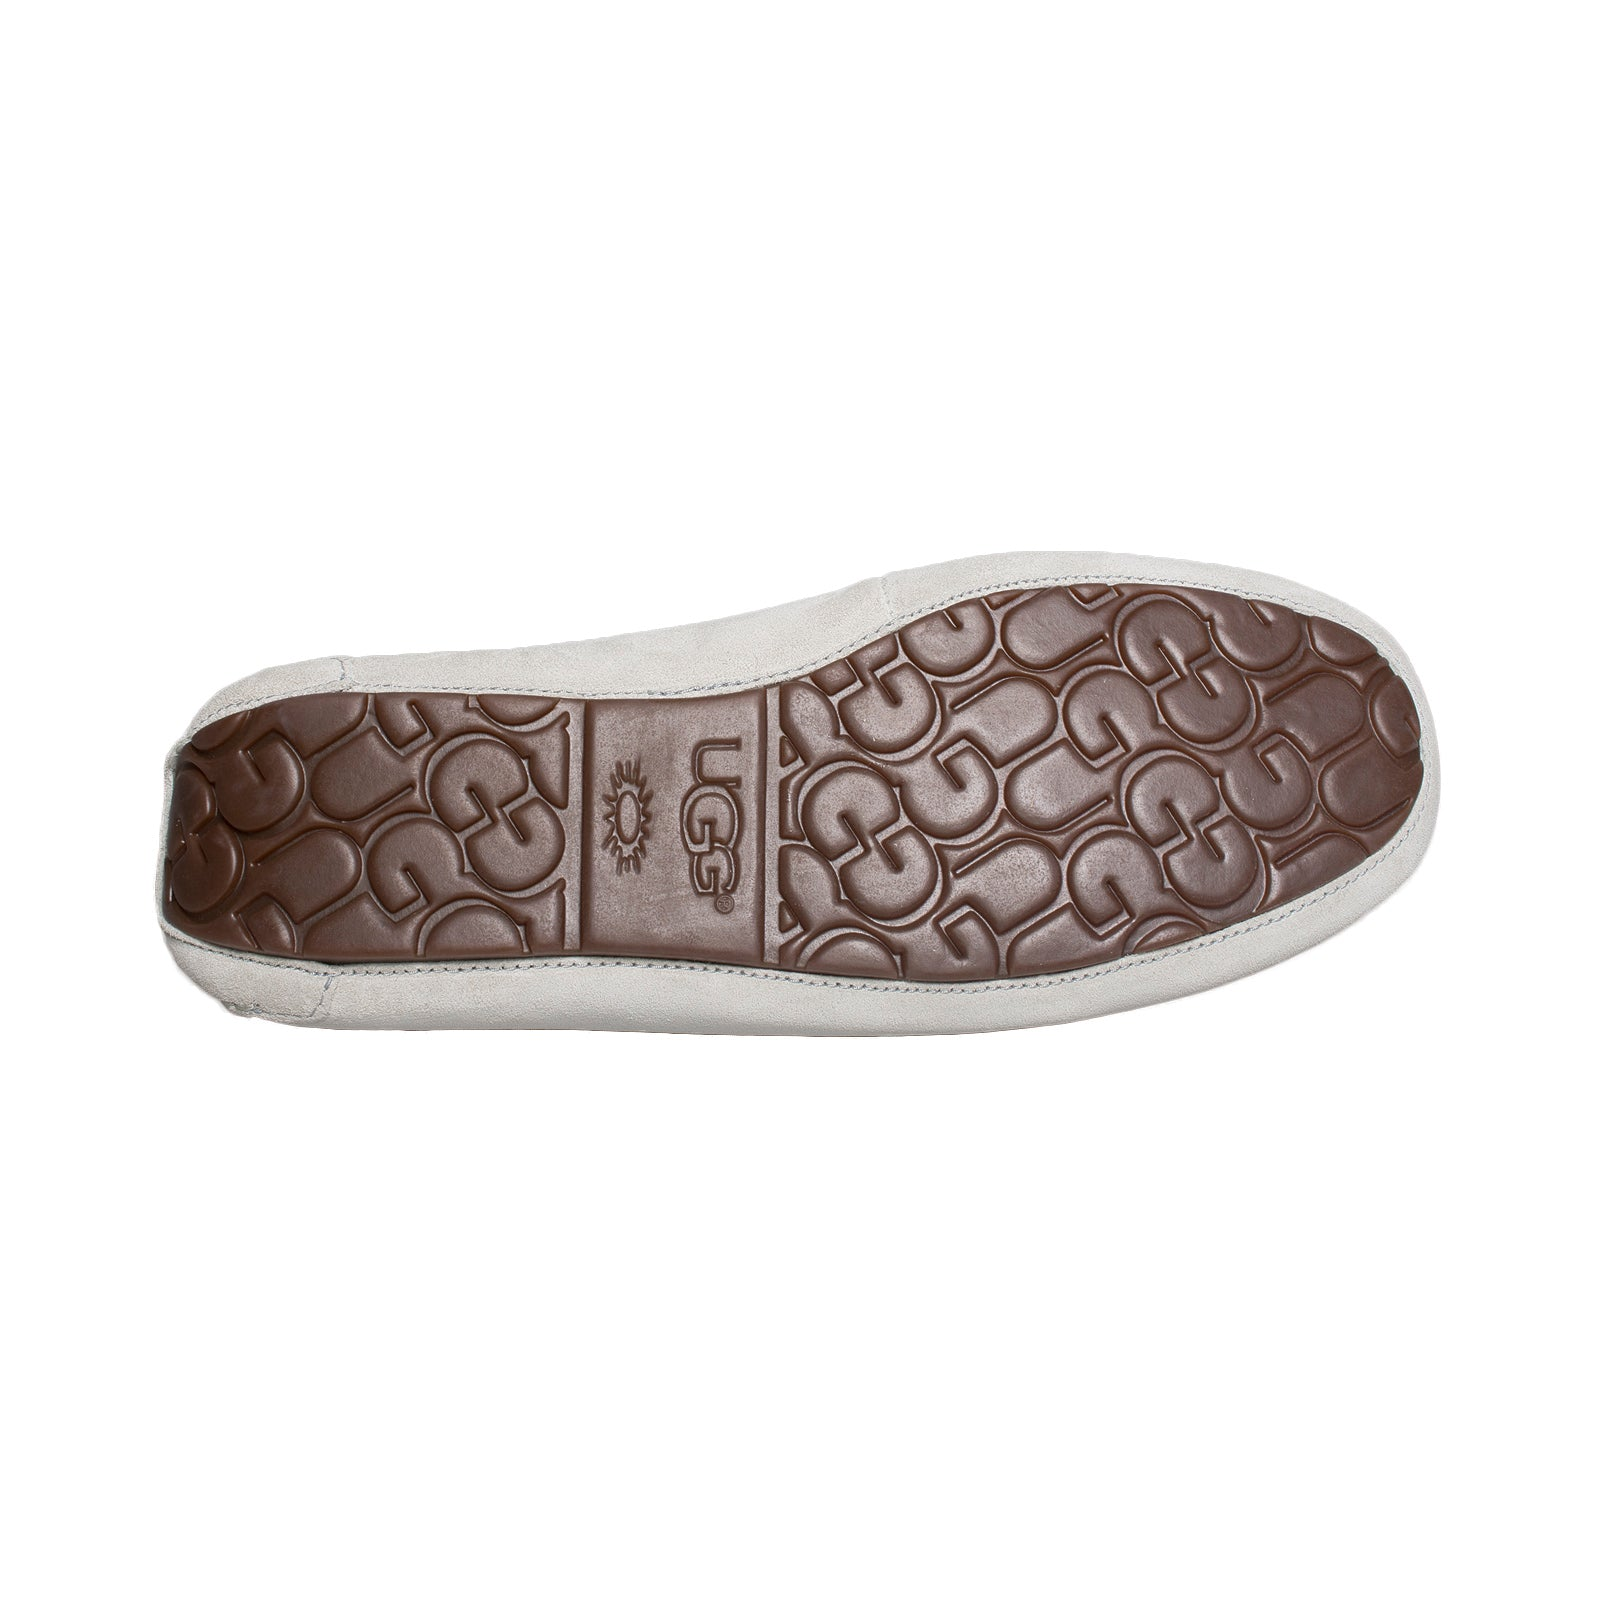 7cc1b2f7367 UGG Ansley Studded Bling Grey Violet Slippers - Women's